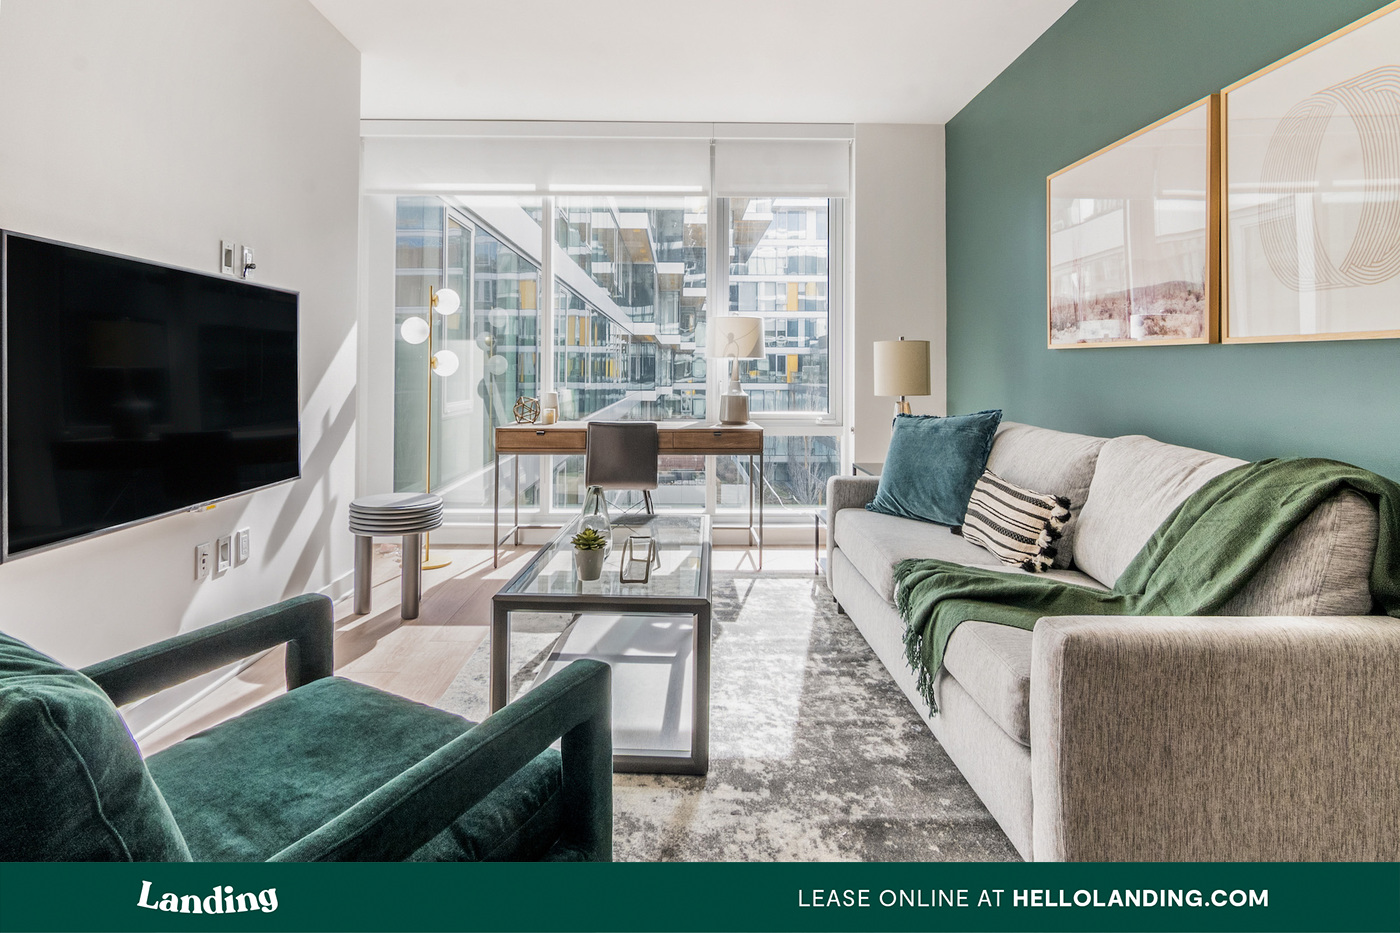 Landing Furnished Apartment The Residences of Westover Hills Apartments for rent